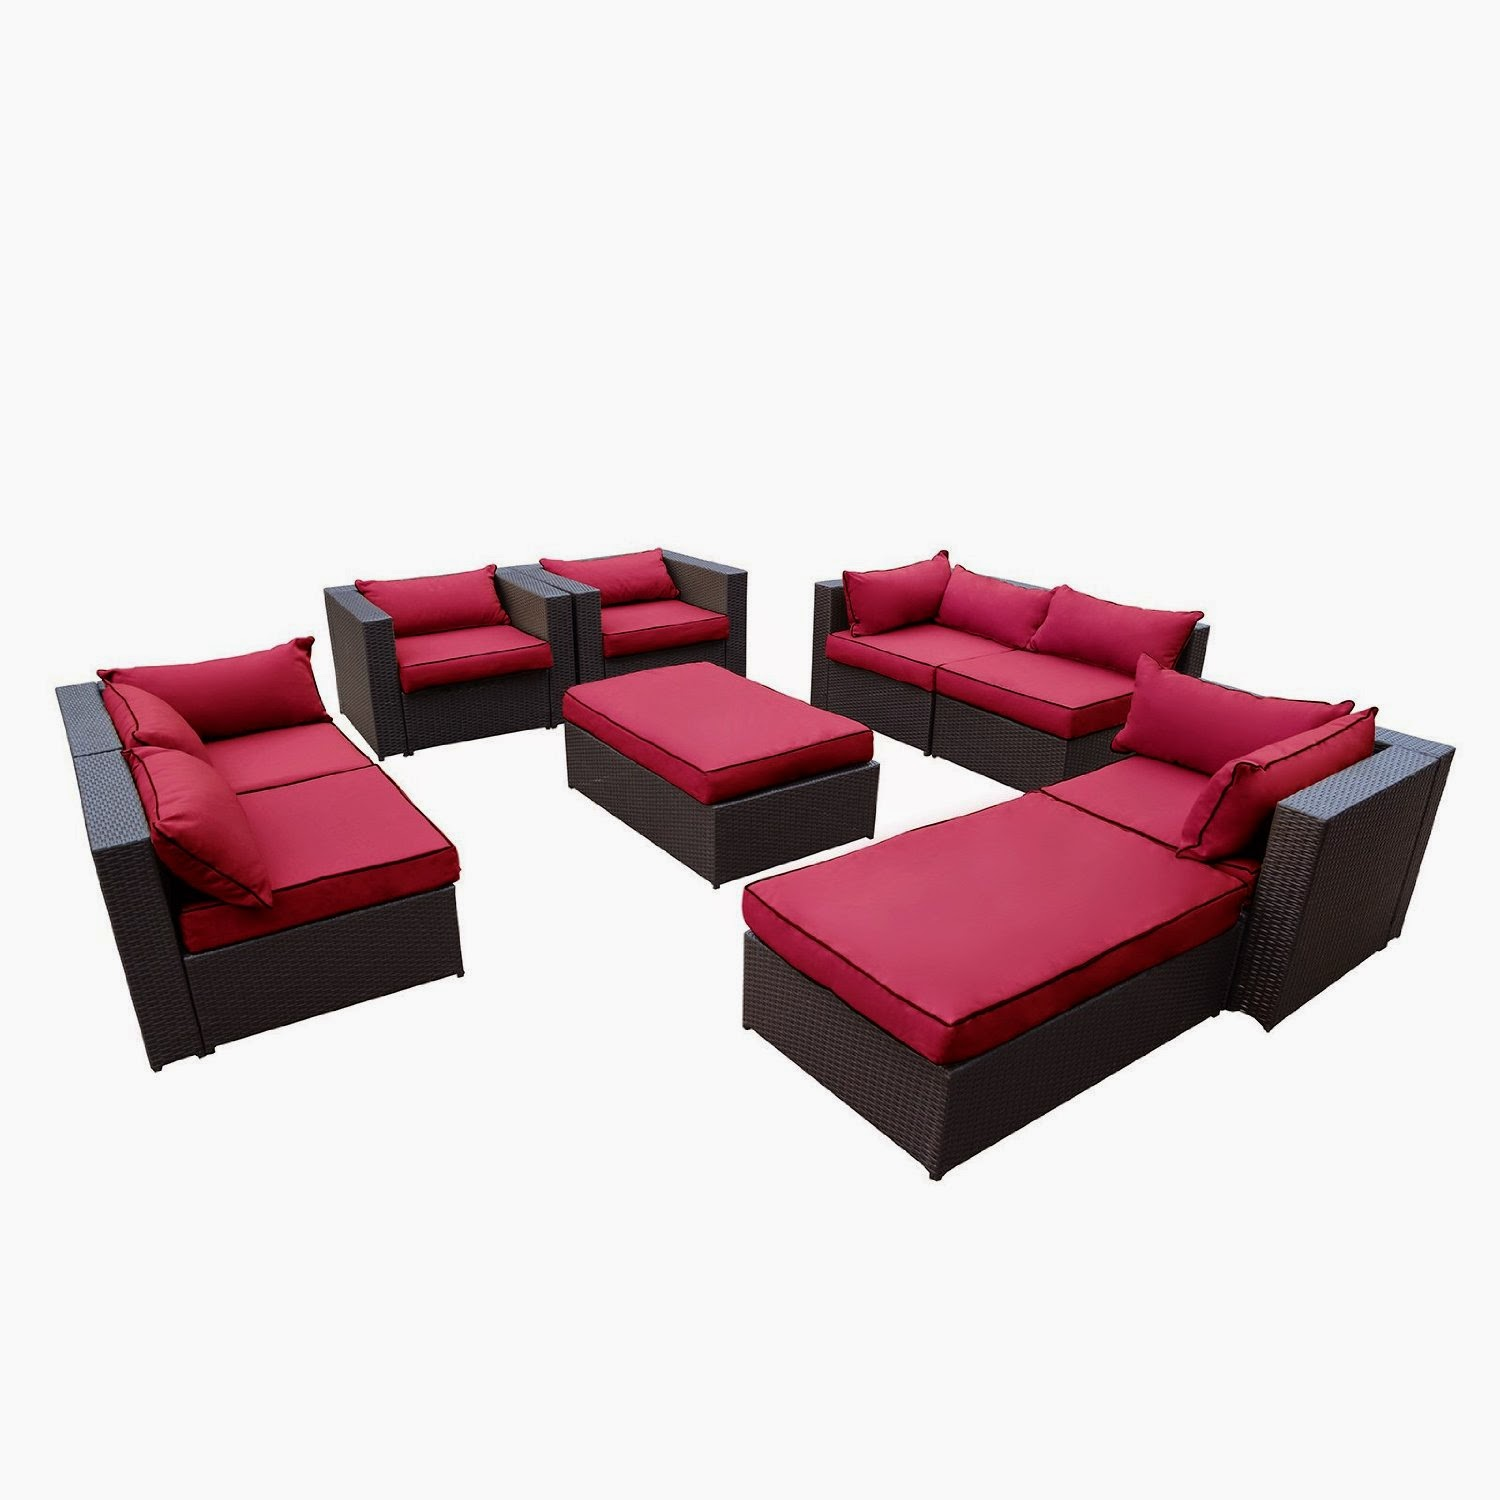 Outdoor Patio Rattan Wicker Furniture Sectional Sofa Garden Furniture Set Red Outdoor Patio